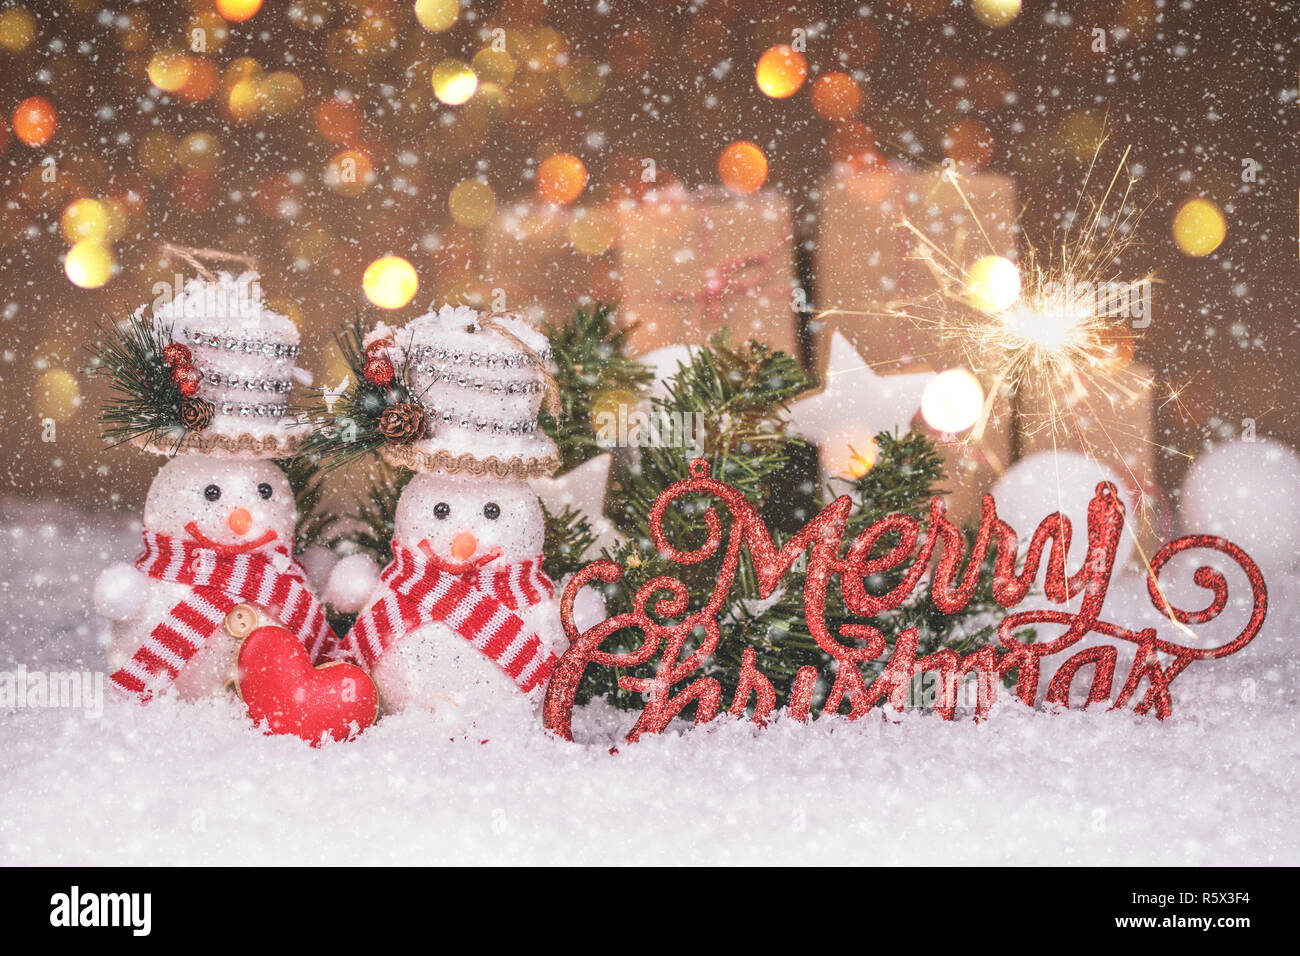 Snowman Couple With Red Heart Christmas Decorations And Snow Merry Christmas And Happy New Year Stock Photo Alamy